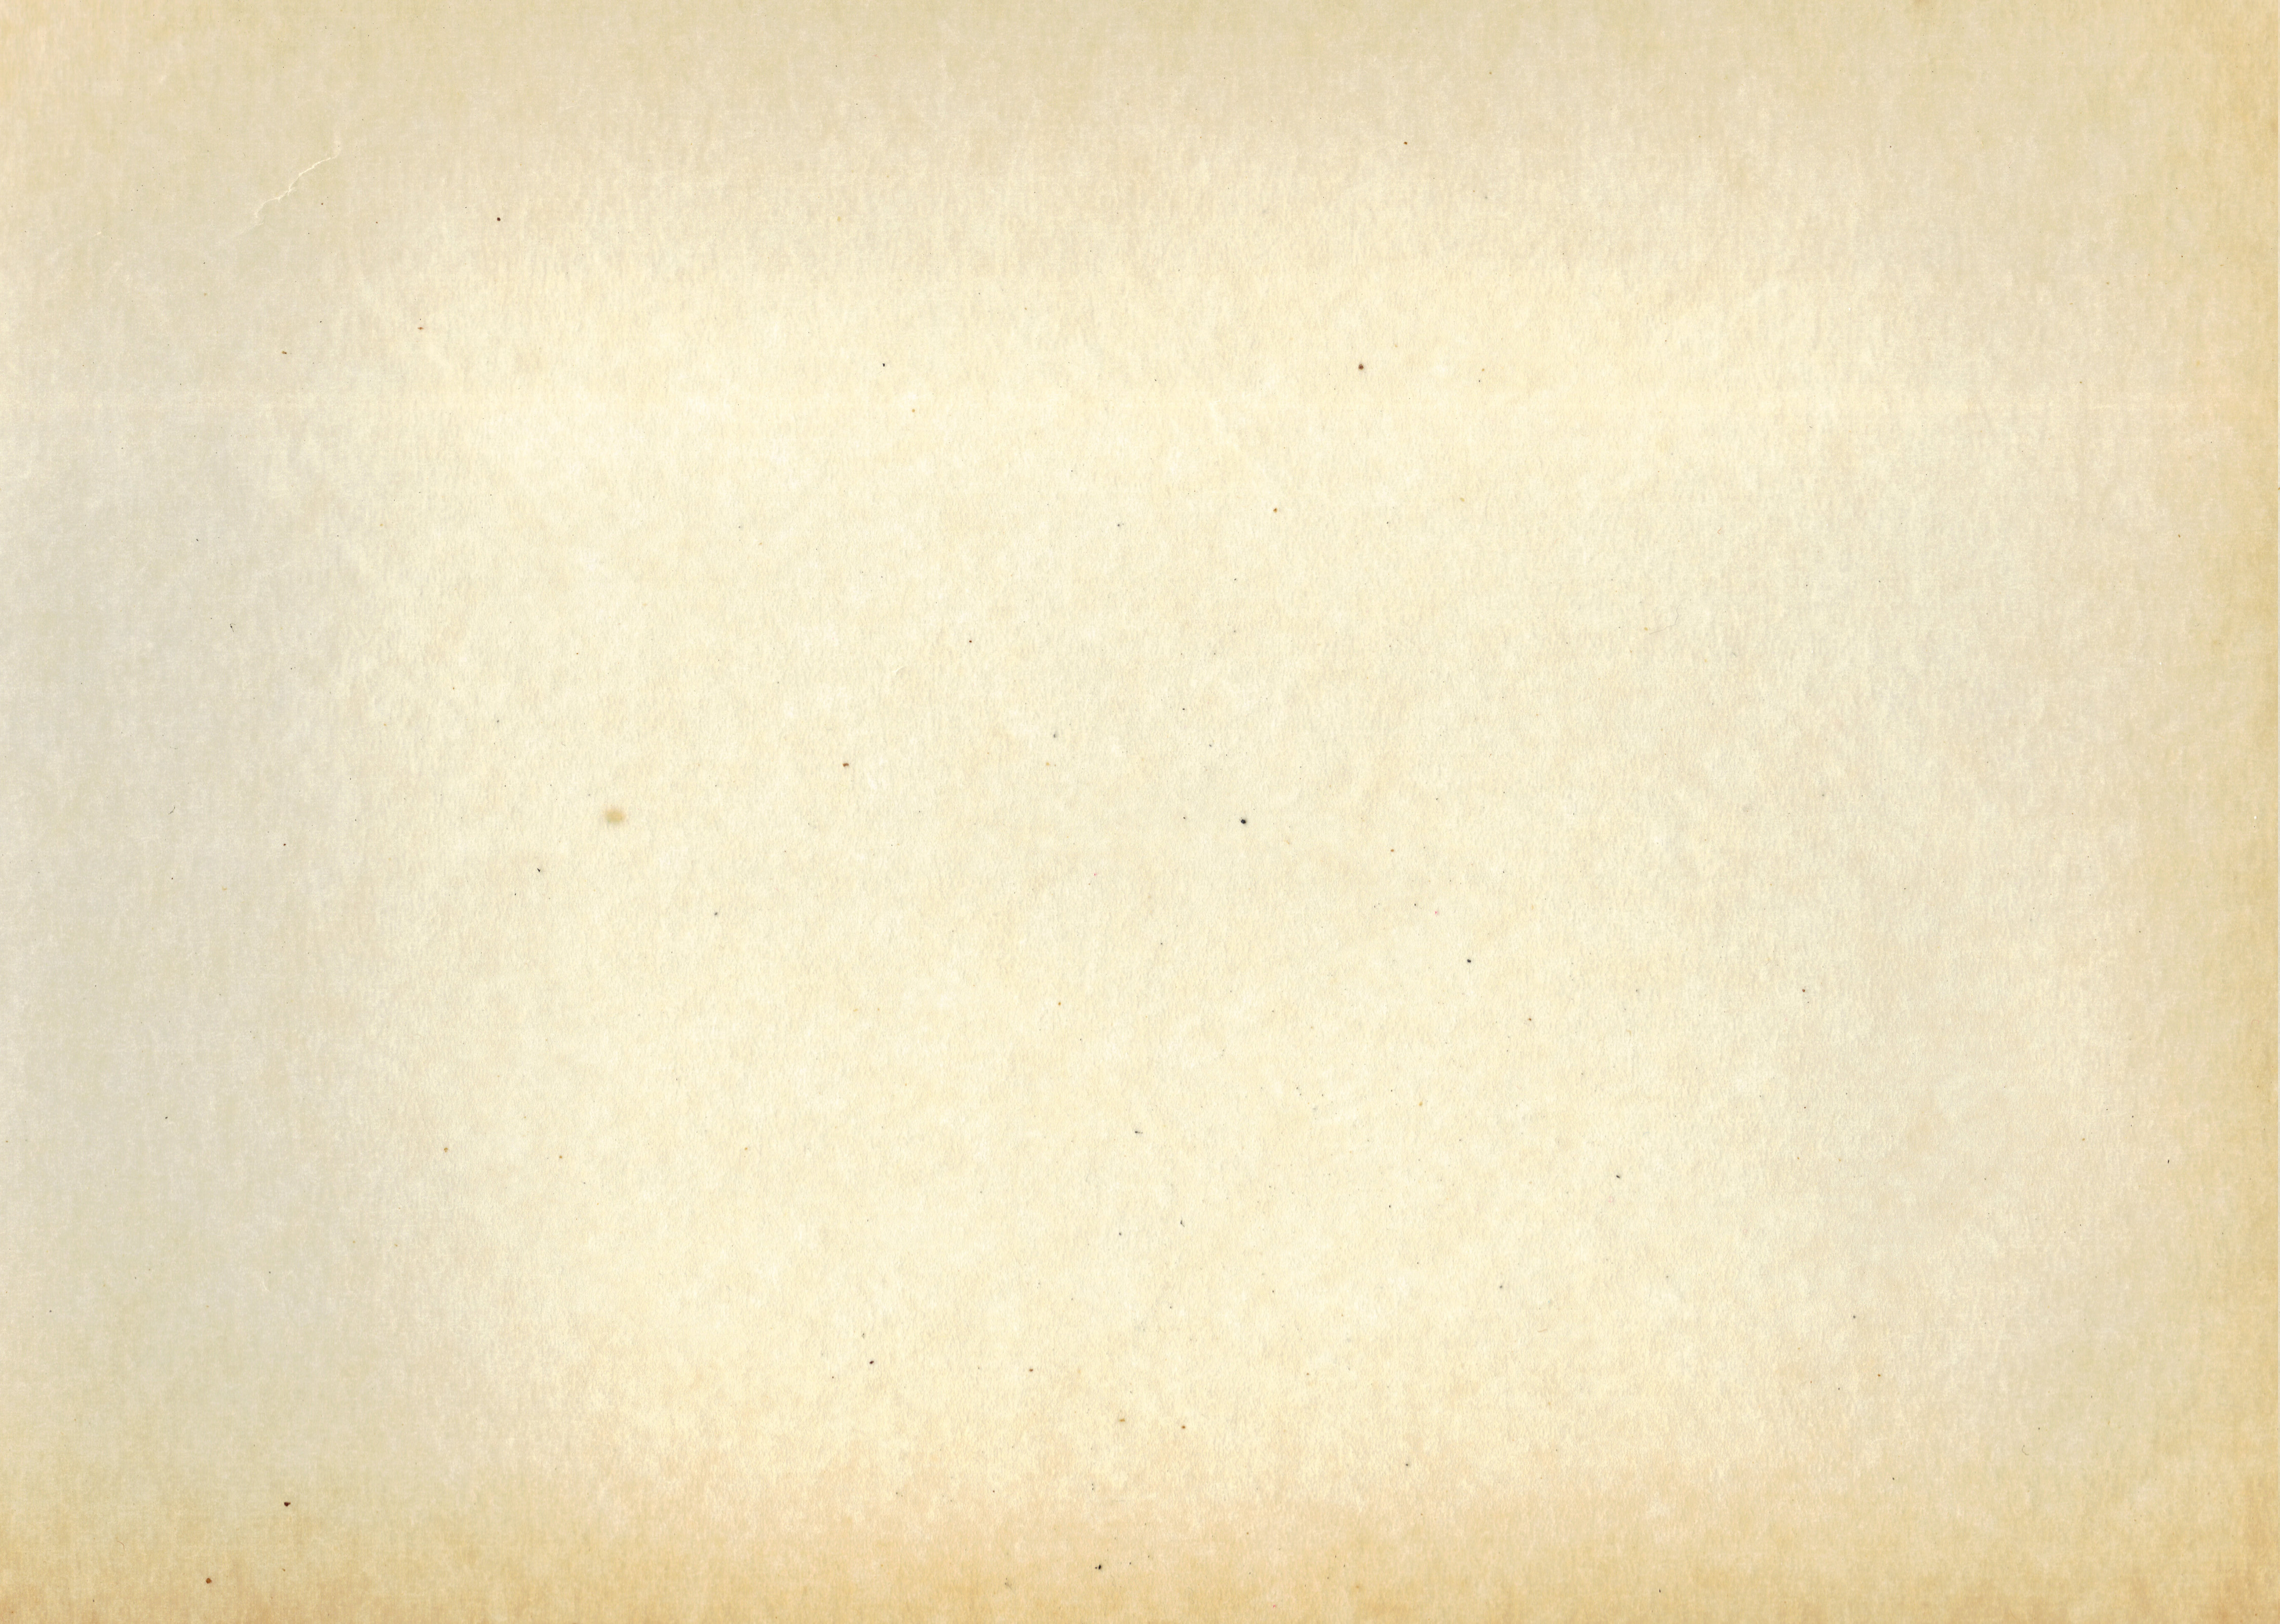 Free Download Simple Old Paper 2 Transparent